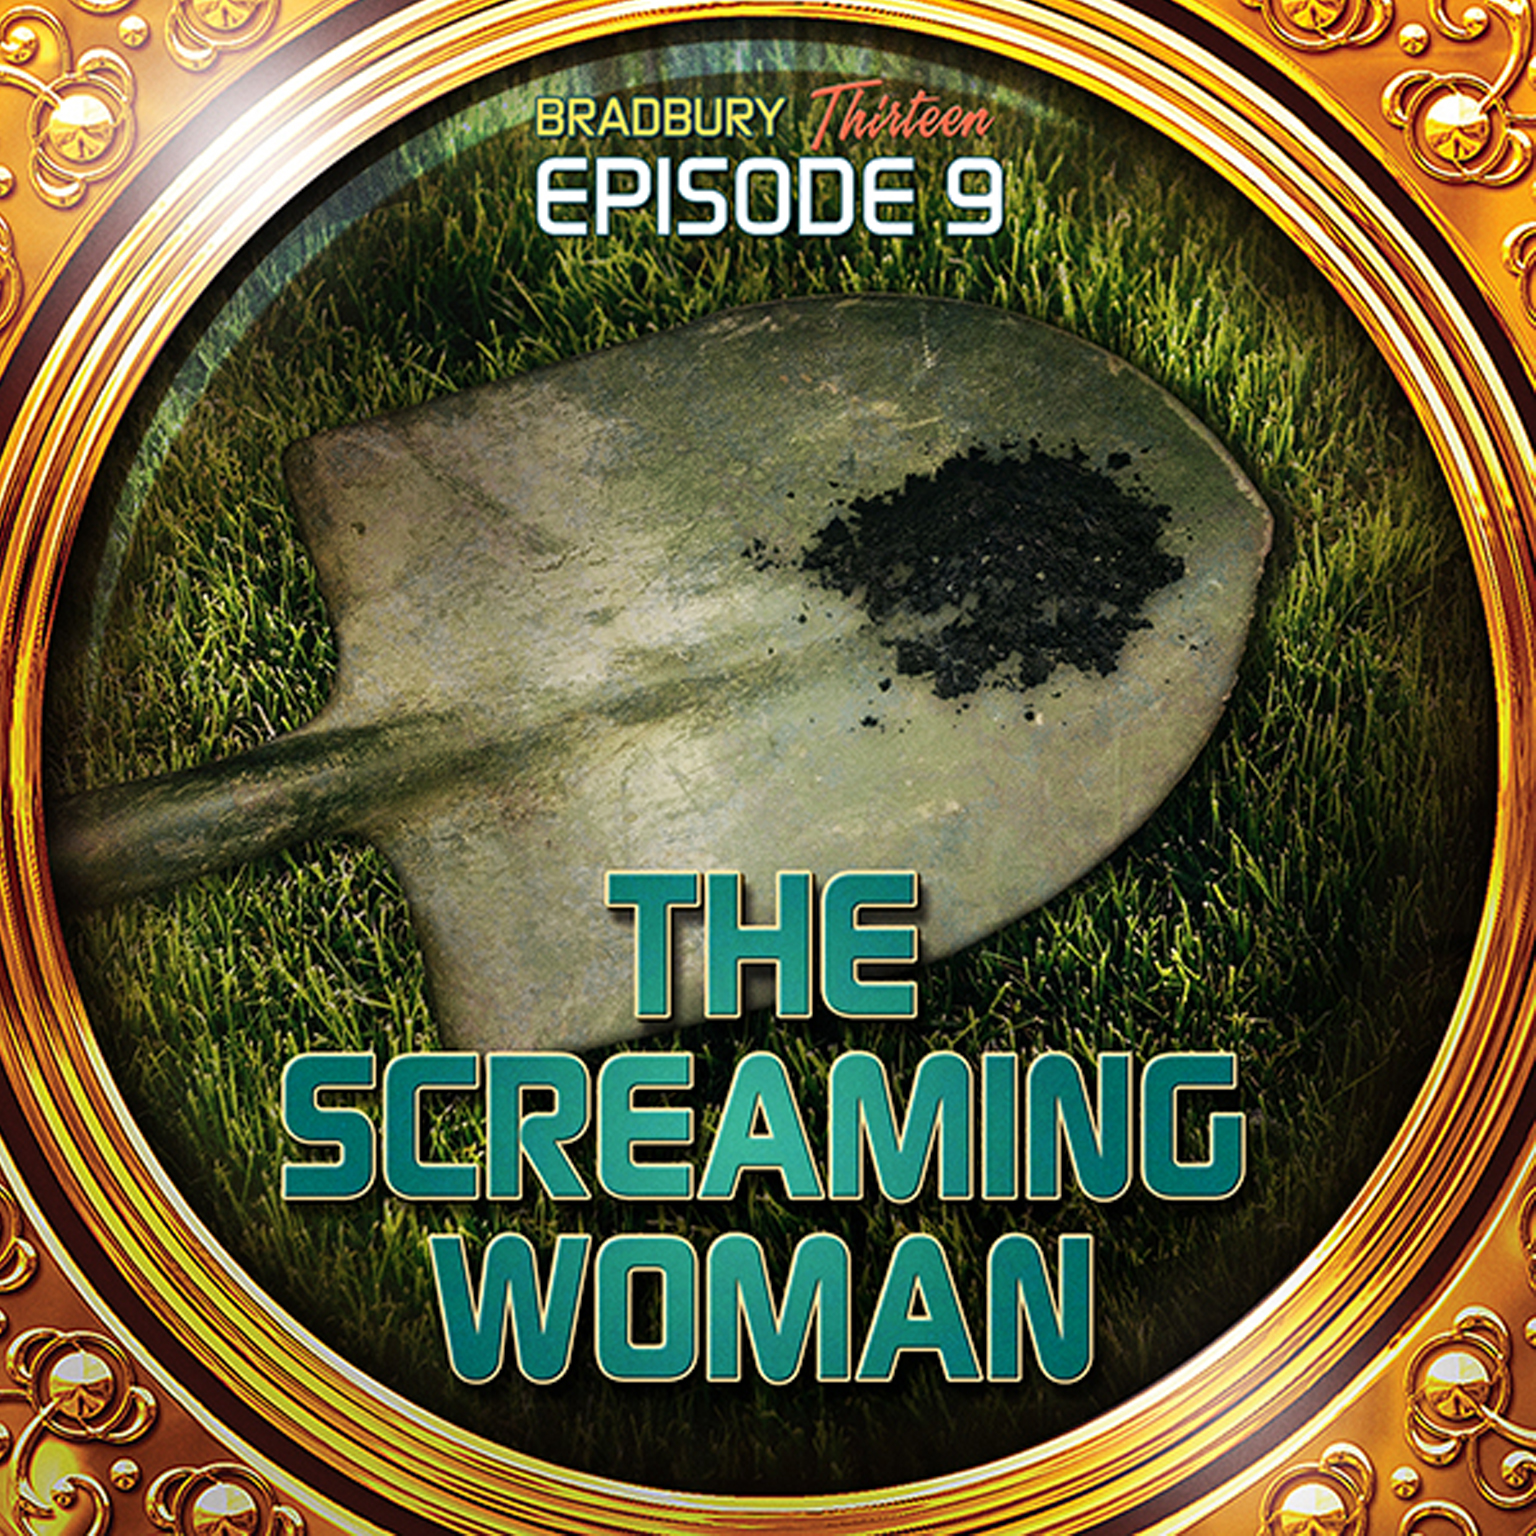 Printable The Screaming Woman: Bradbury Thirteen: Episode 9 Audiobook Cover Art